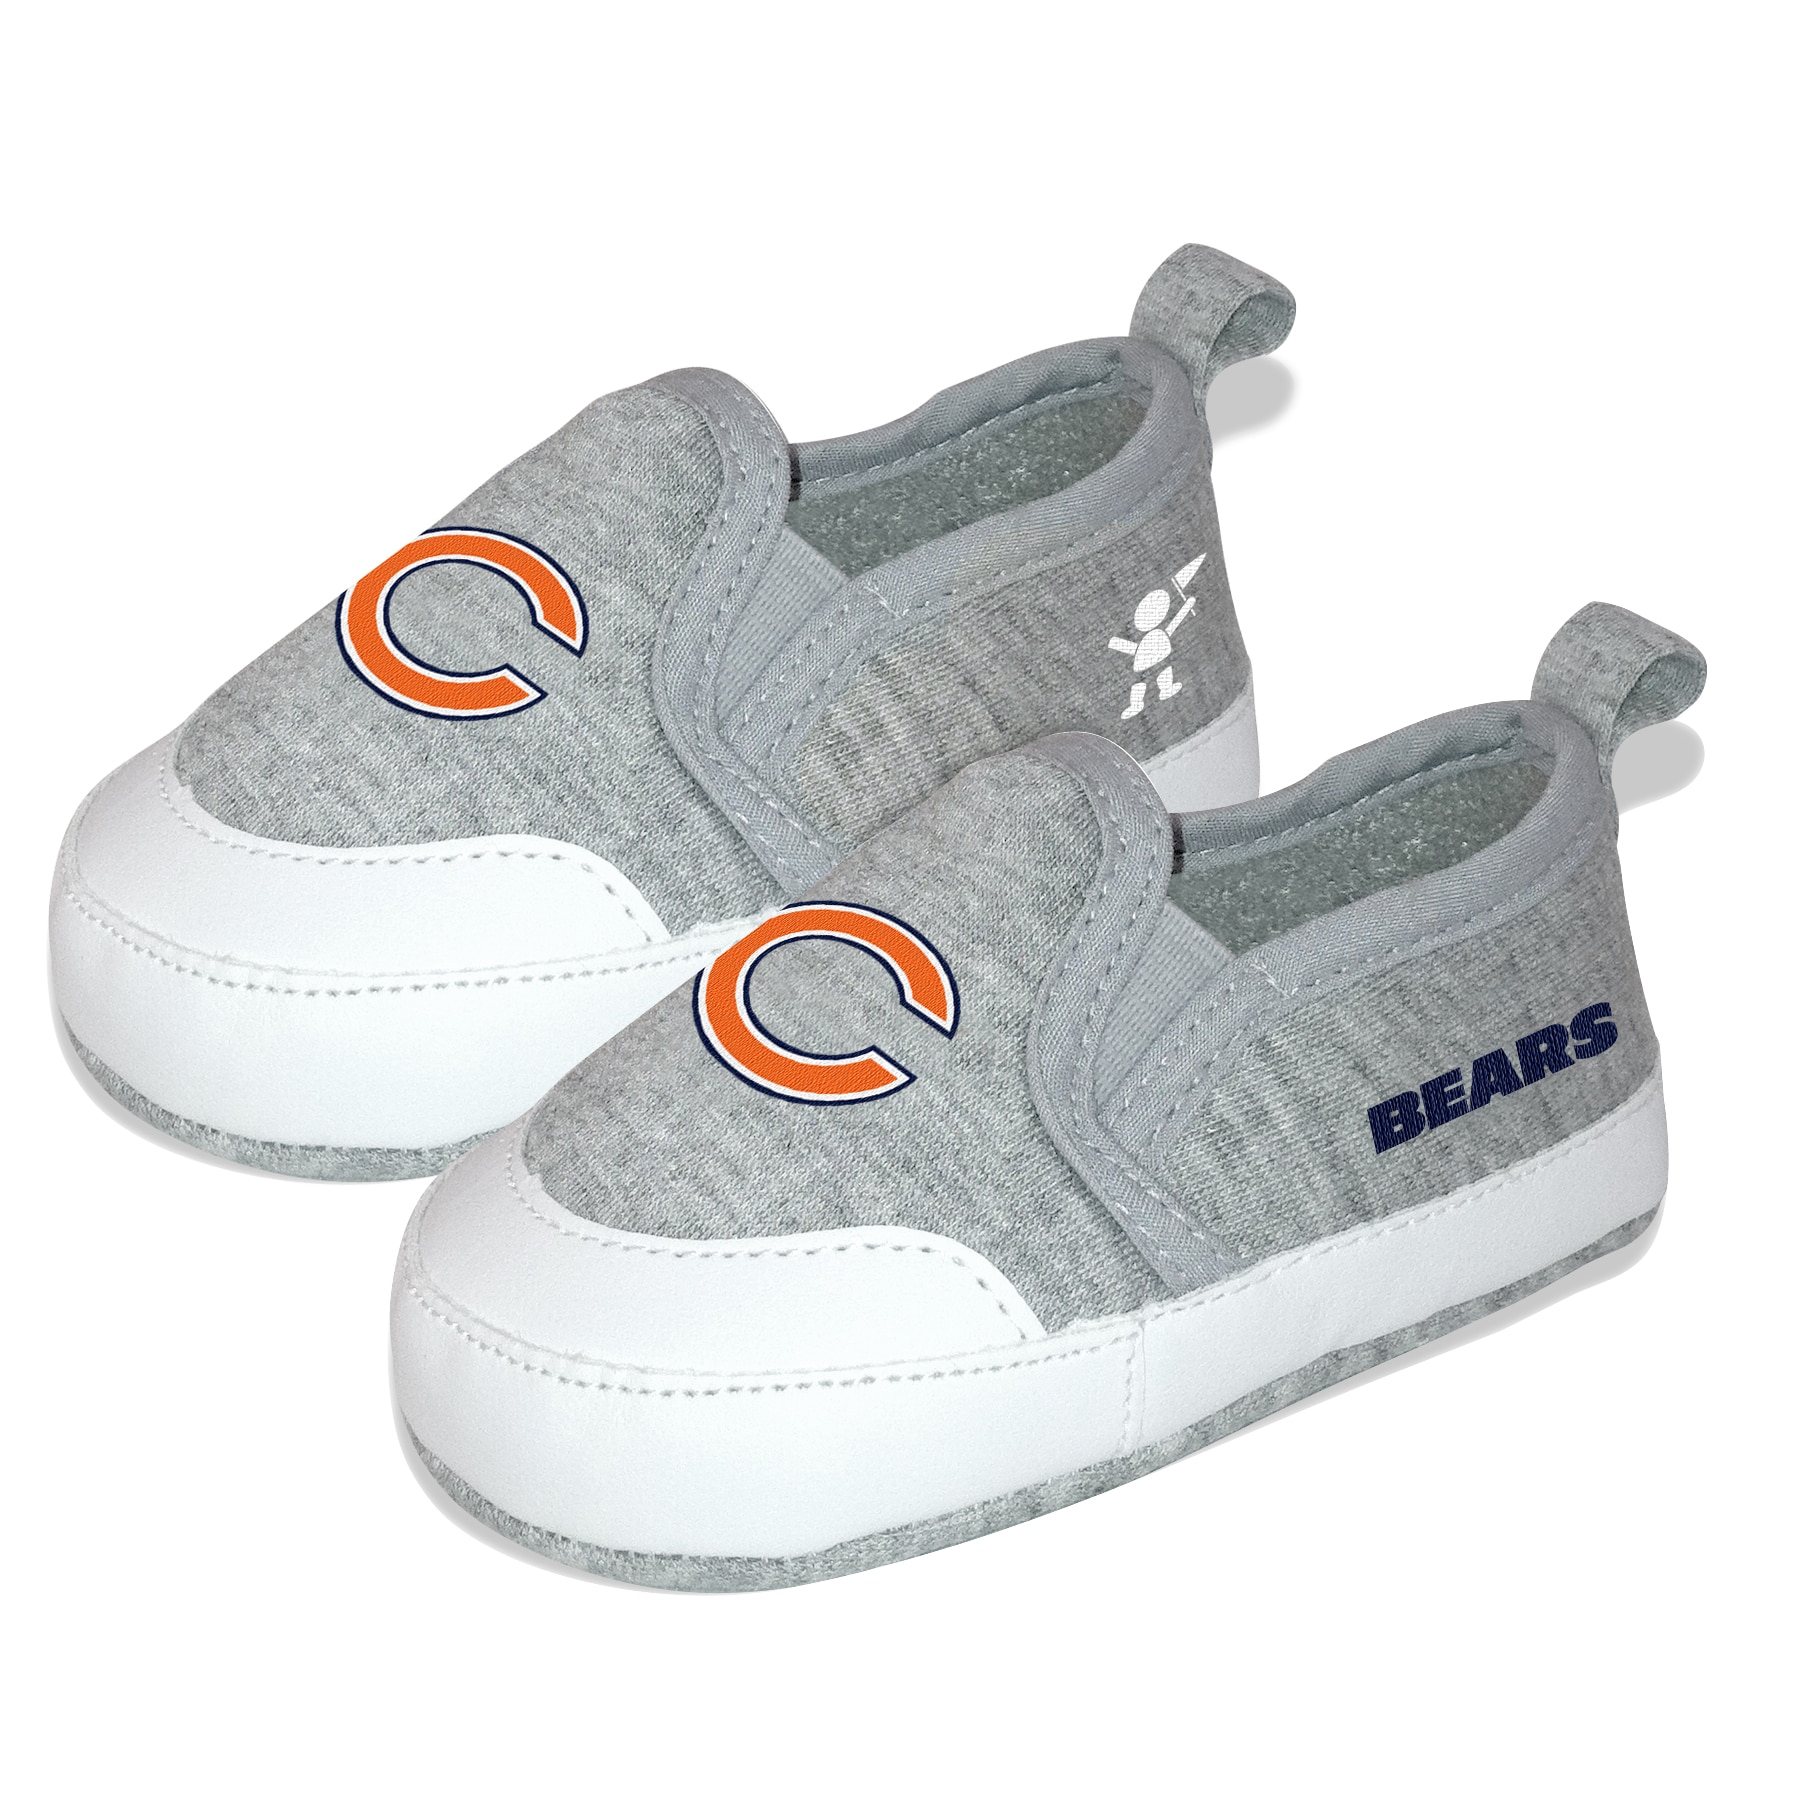 Chicago Bears Pre-walk Baby Shoes